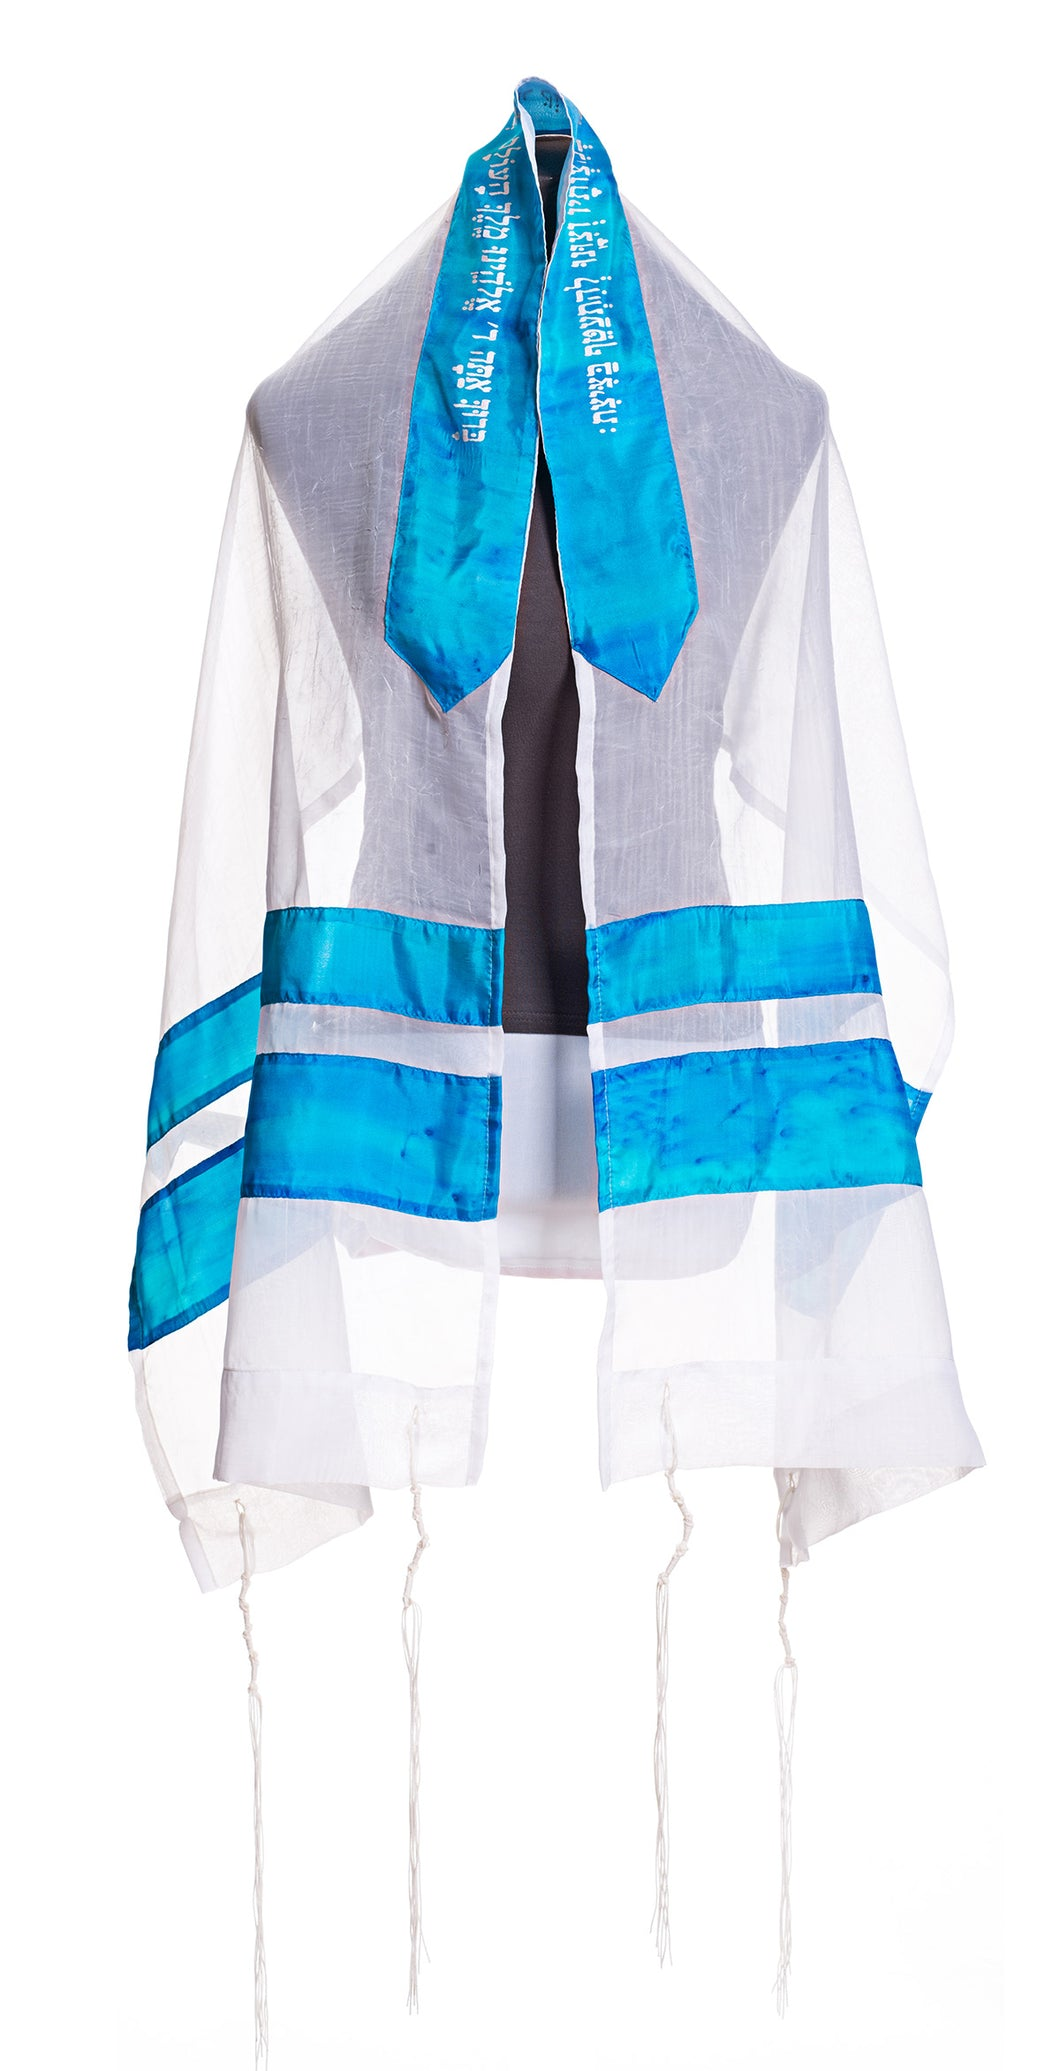 Blue tallit, Silk tallit, bat mitzvah tallit with stripes, girls tallit by Galilee Silks Israel